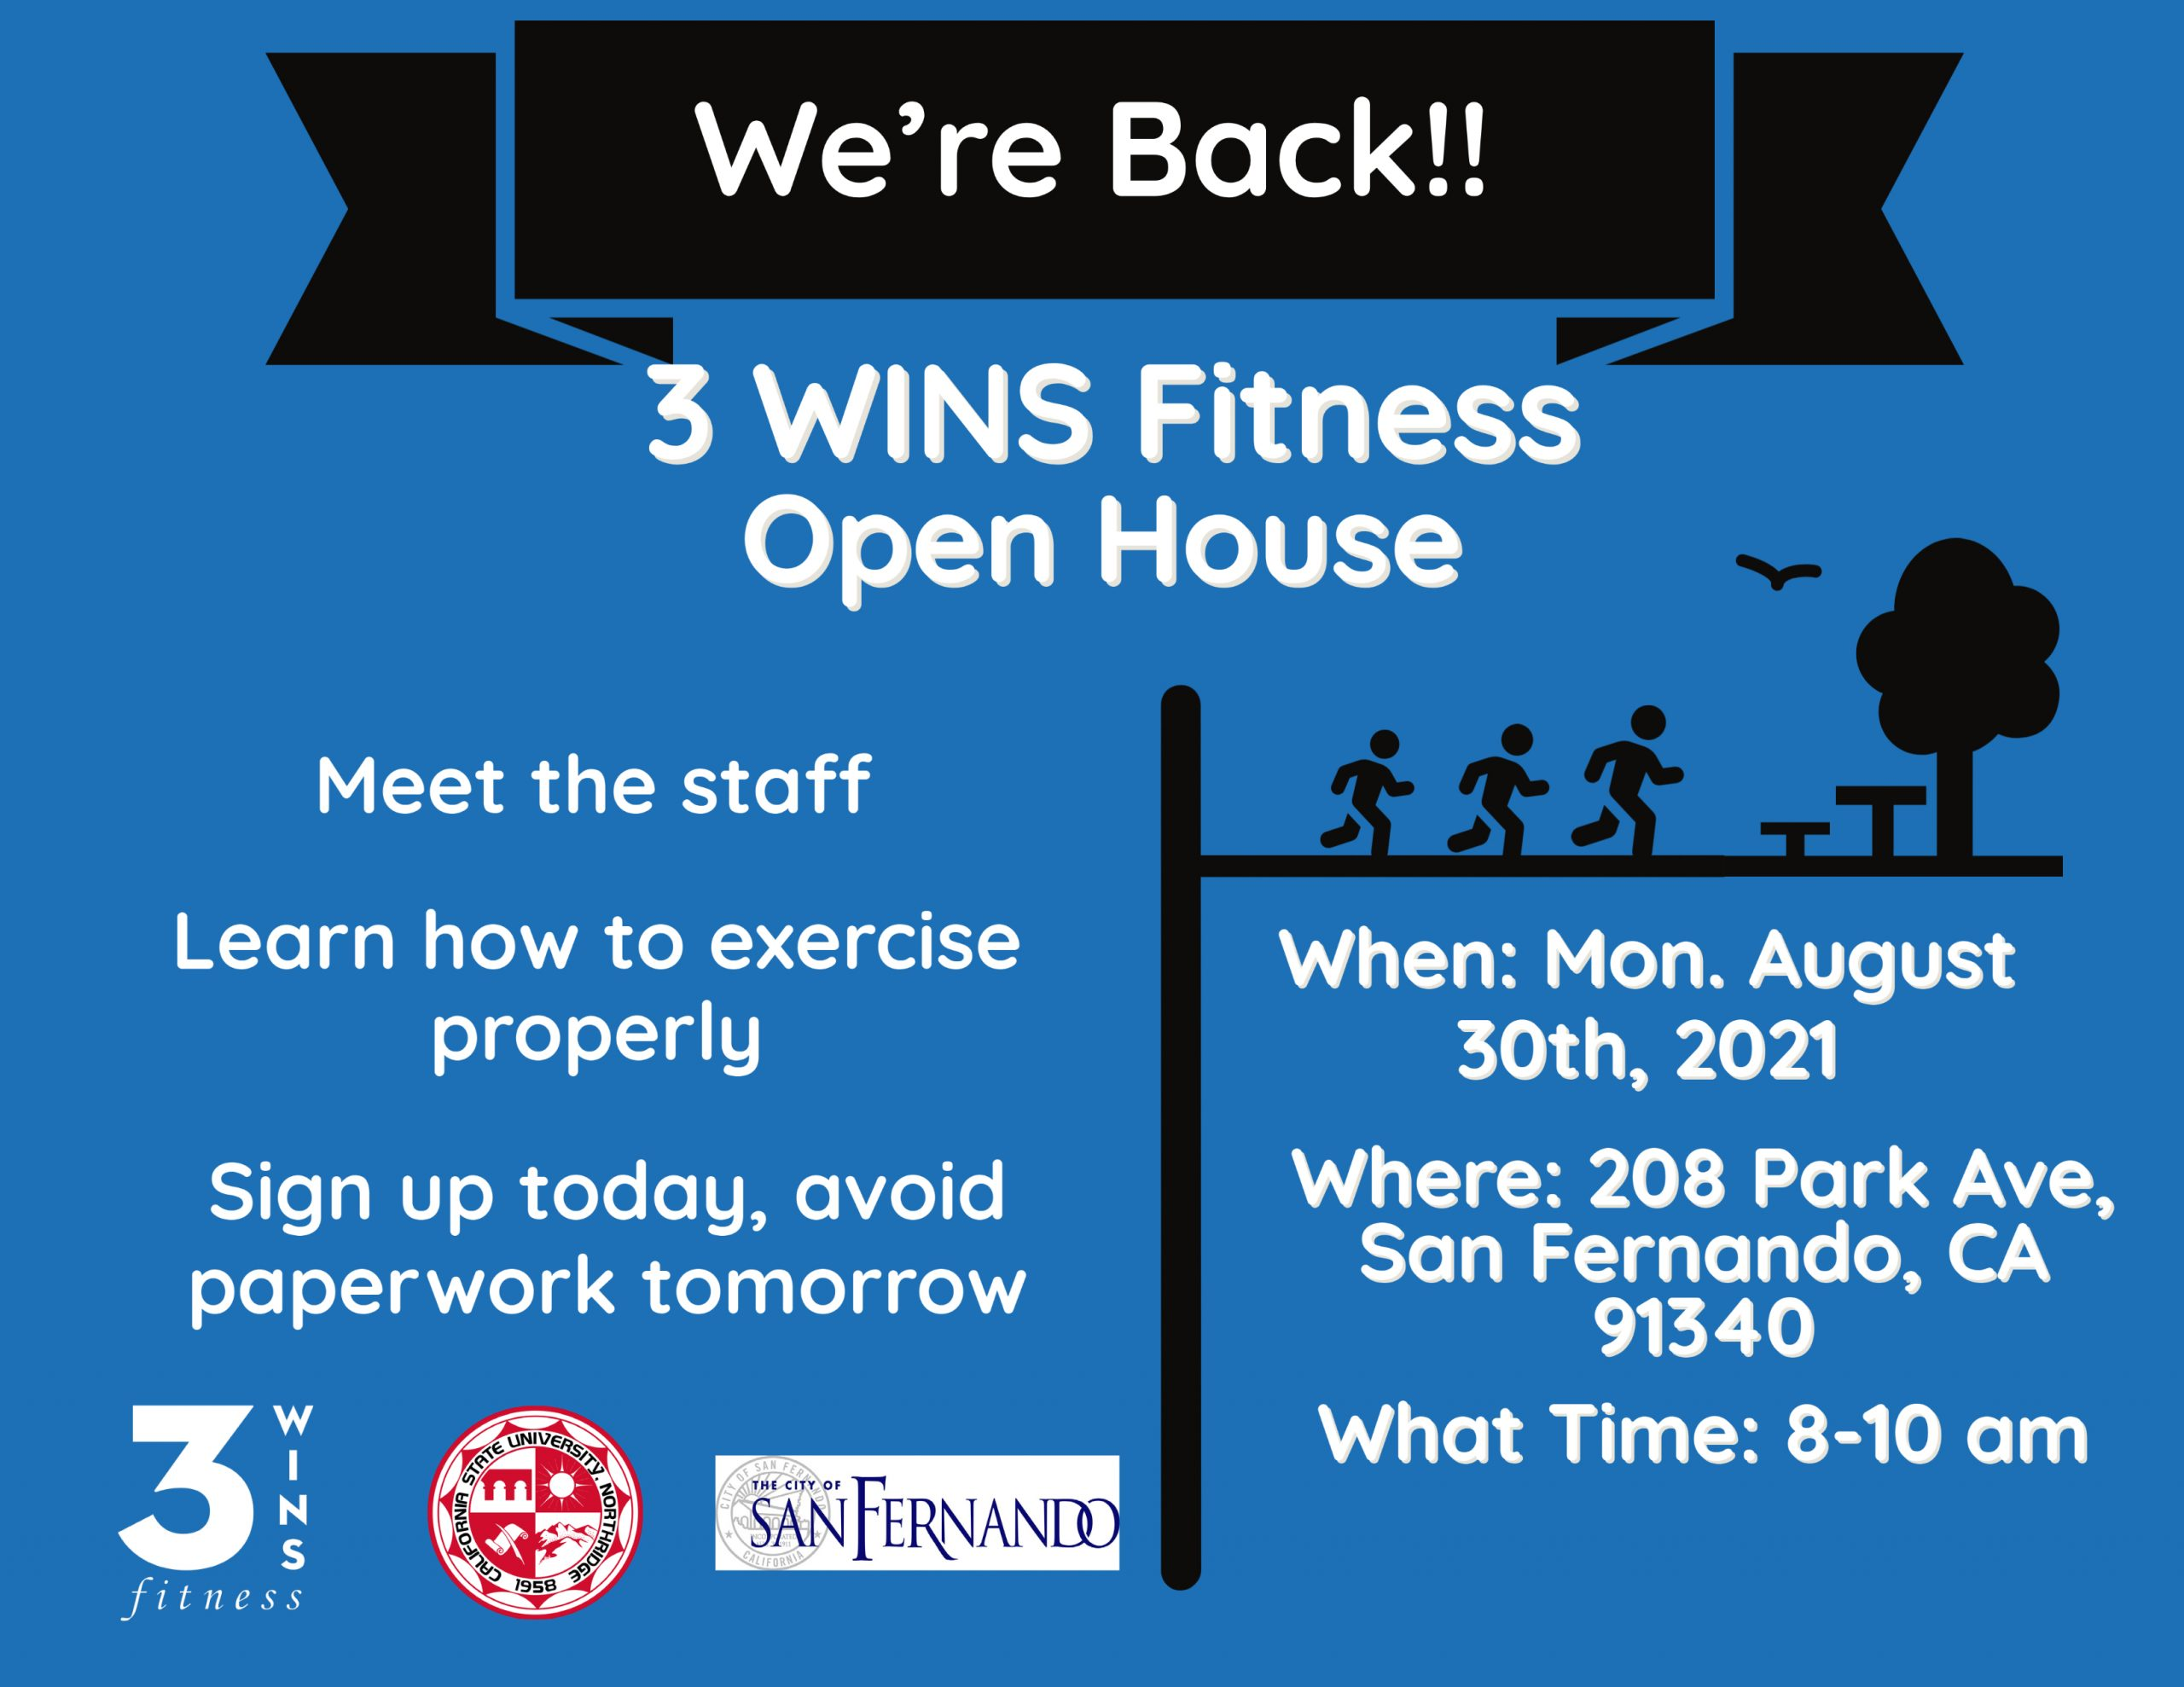 3 WINS FITNESS OPEN HOUSE